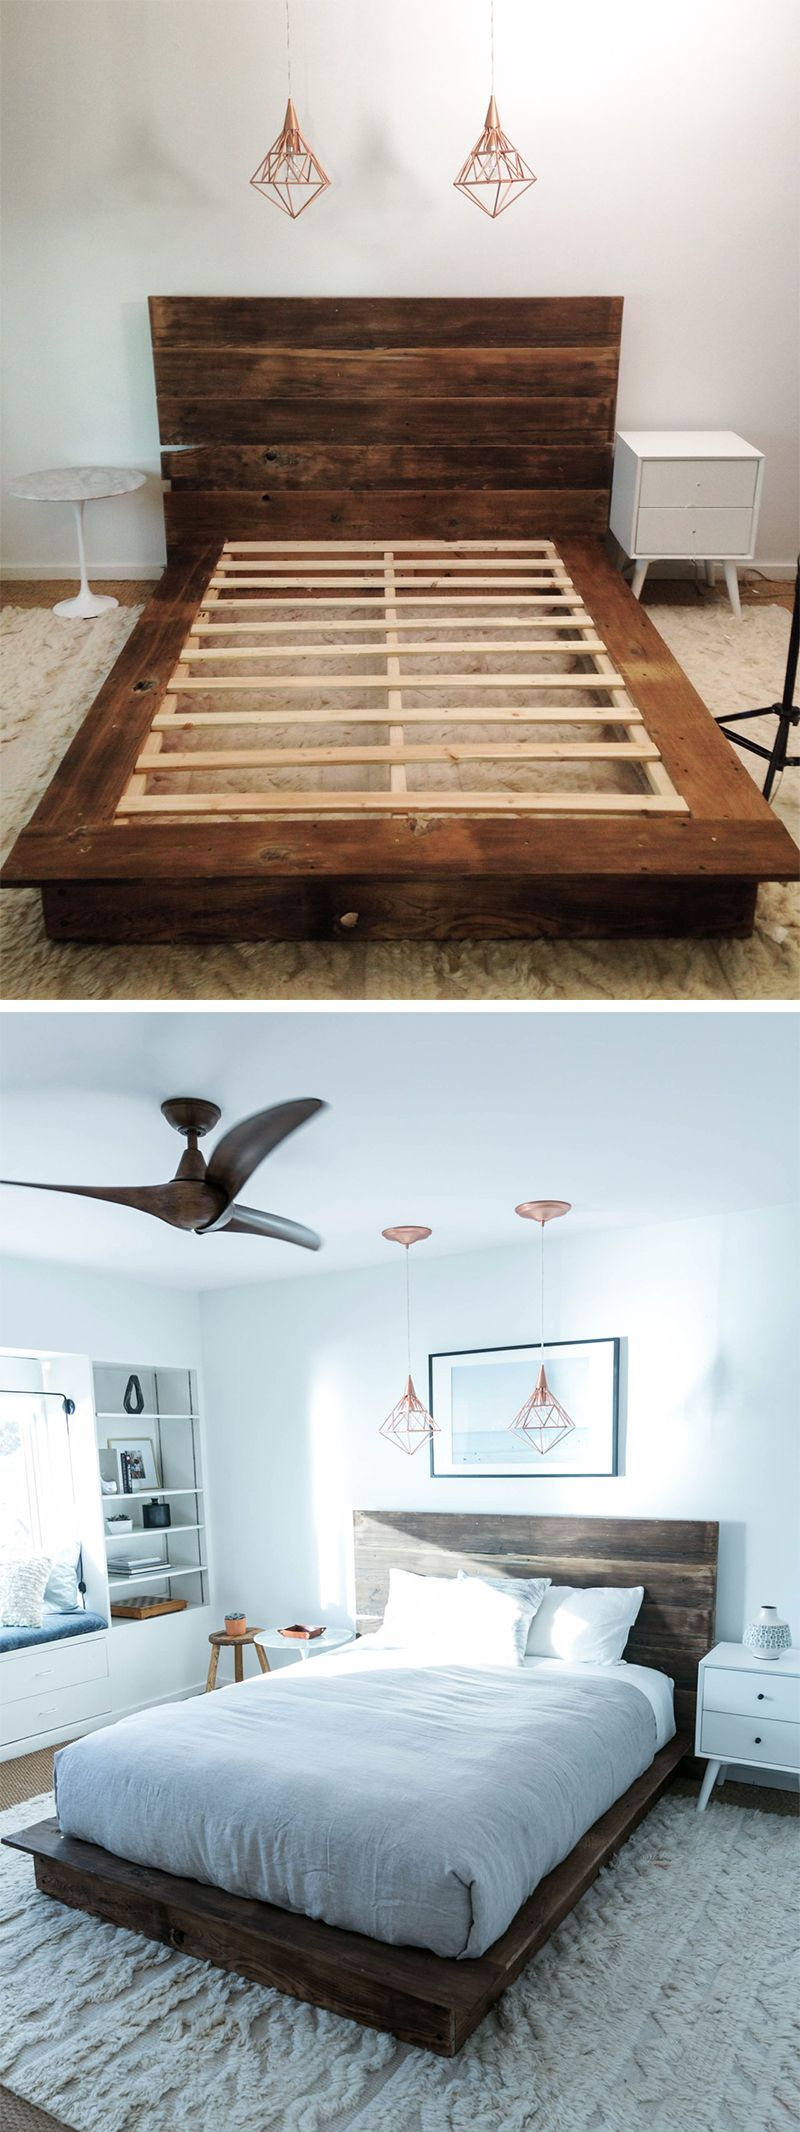 Diy reclaimed wood platform bed wood platform bed for Simple bed diy